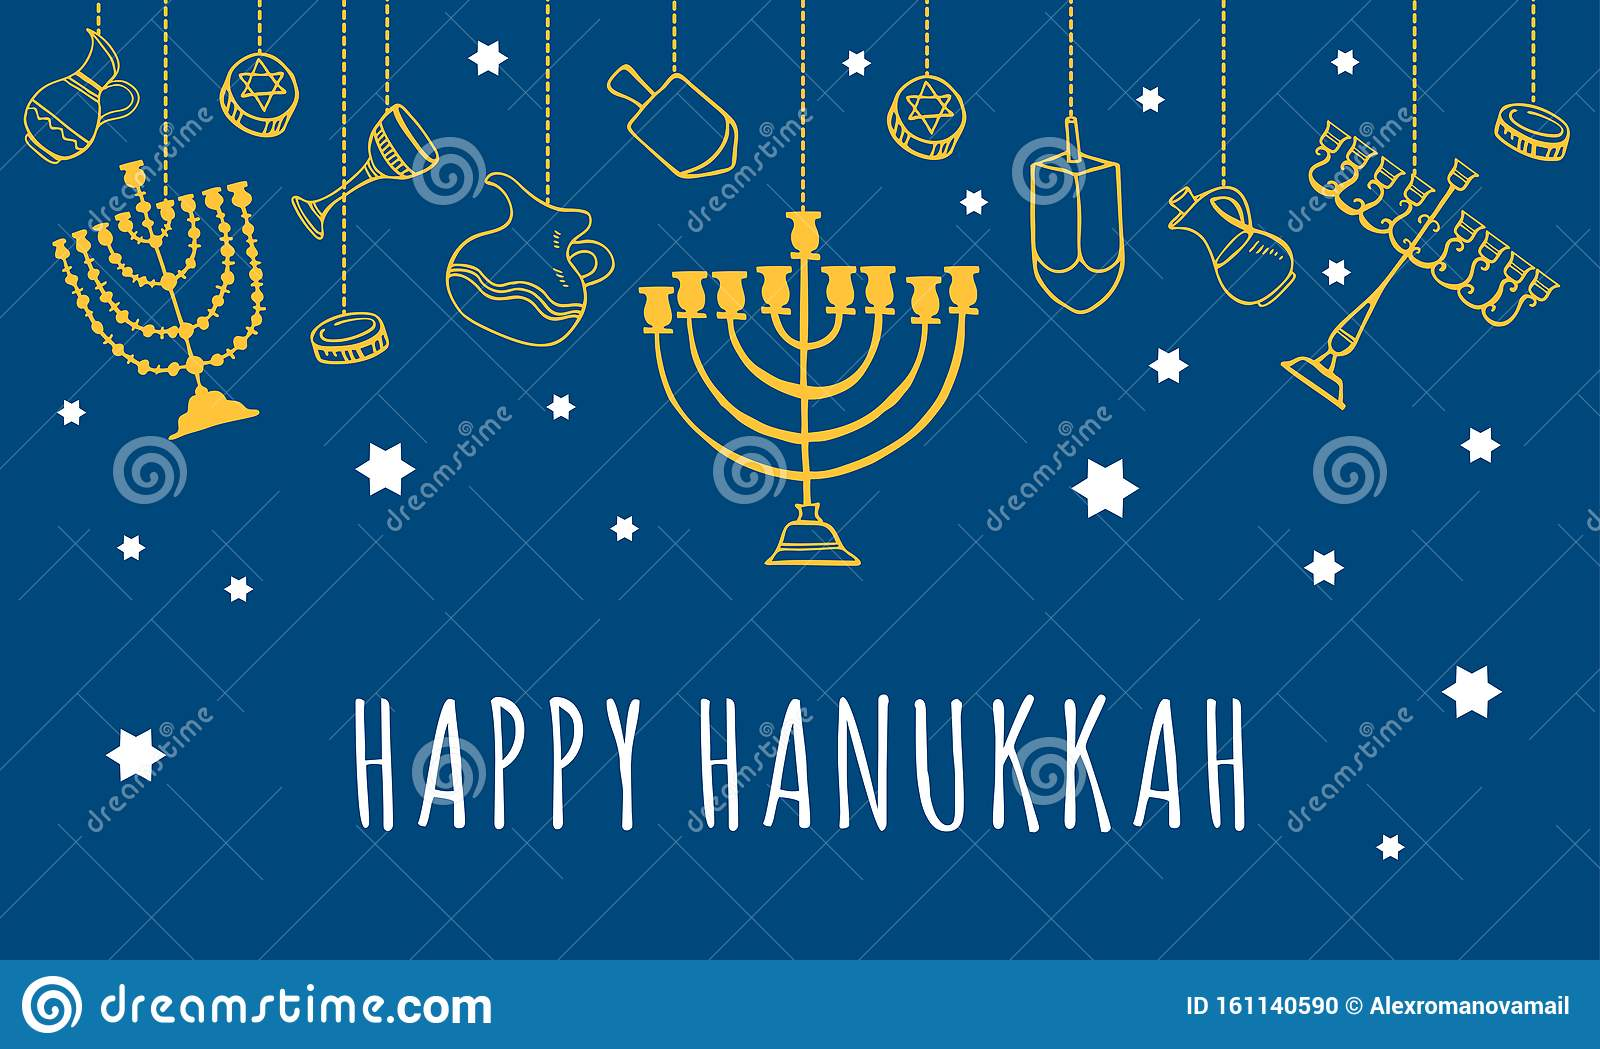 Traditional Hanukkah objects hanging on the top of the page. Greeting card design template. Hand drawn outline sketch illustration